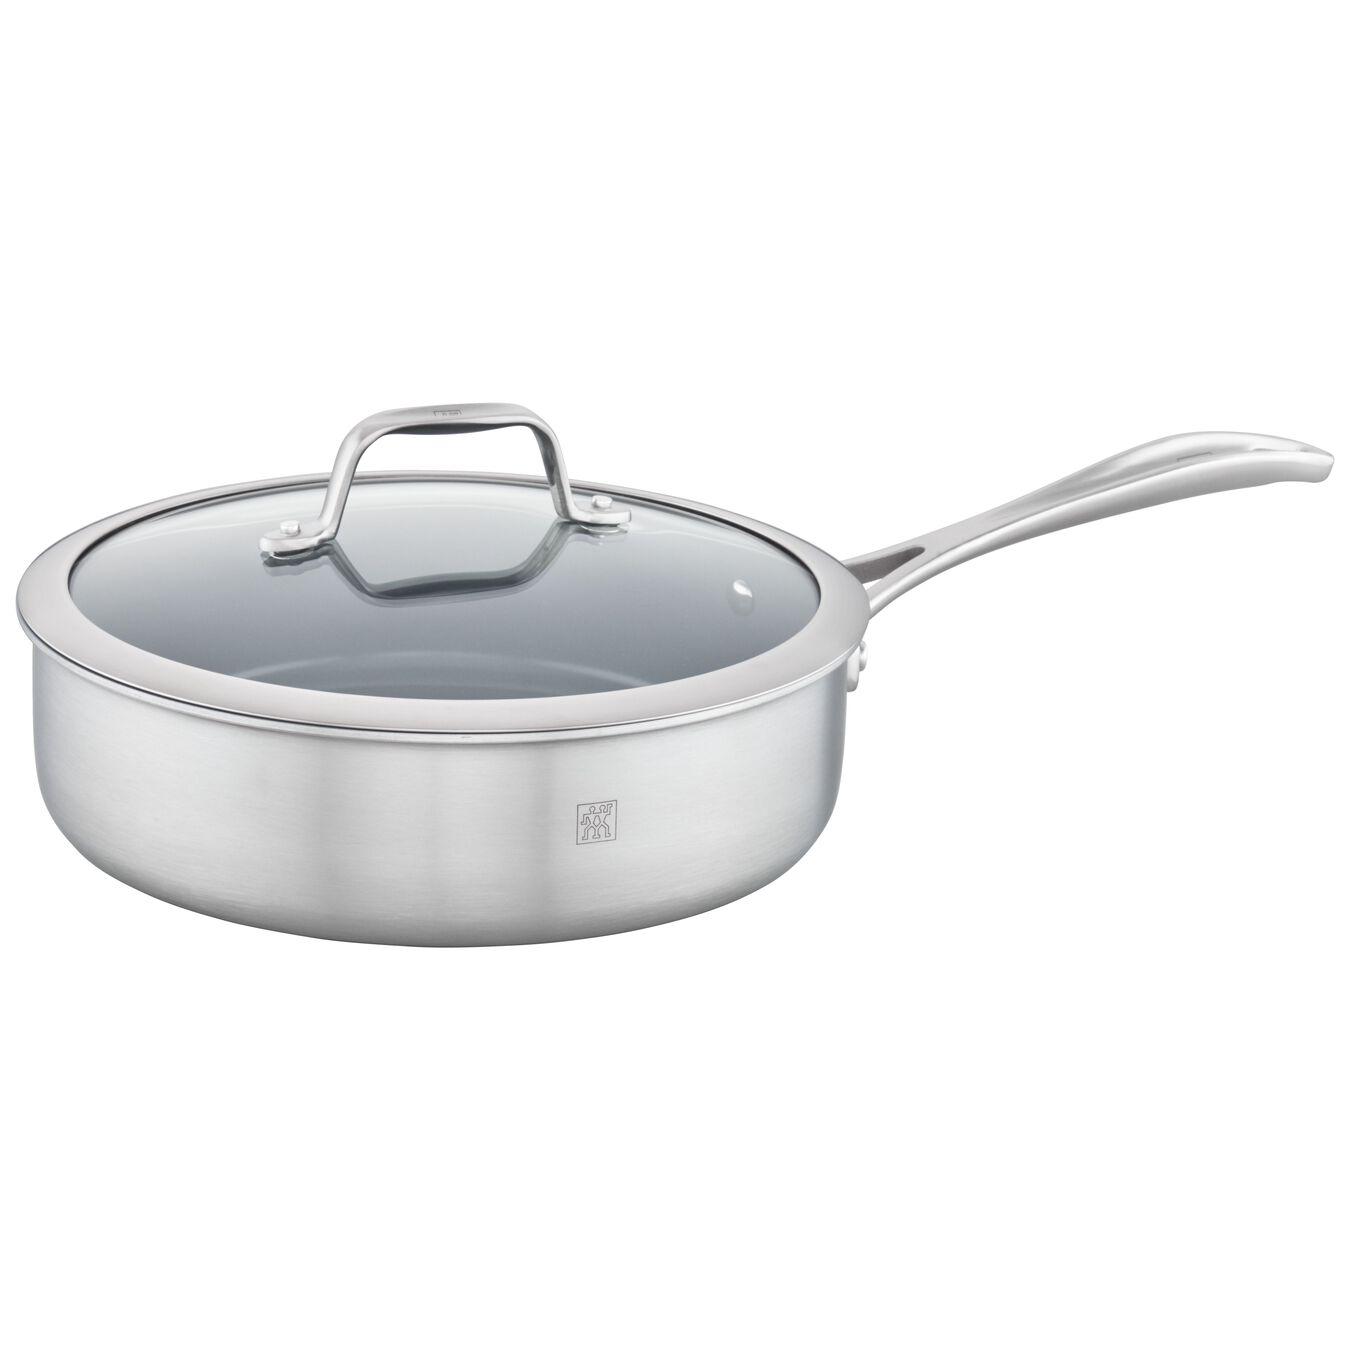 9.5-inch Saute pan, 18/10 Stainless Steel ,,large 4